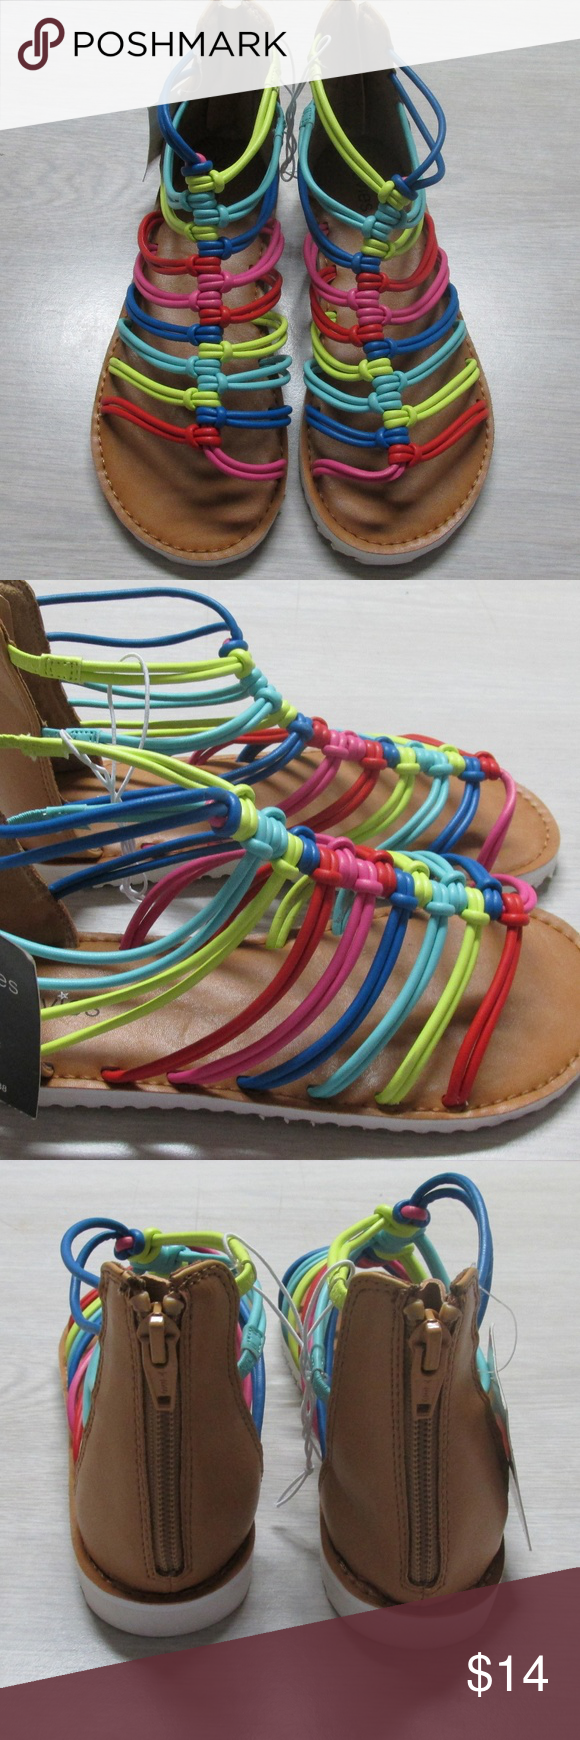 29001d40c1c35 Stevies Girl Called It Rainbow Sandals Your fashion girl will be ready to  wear her warm-weather sandals by Stevies. The versatile style is perfect to  pair ...